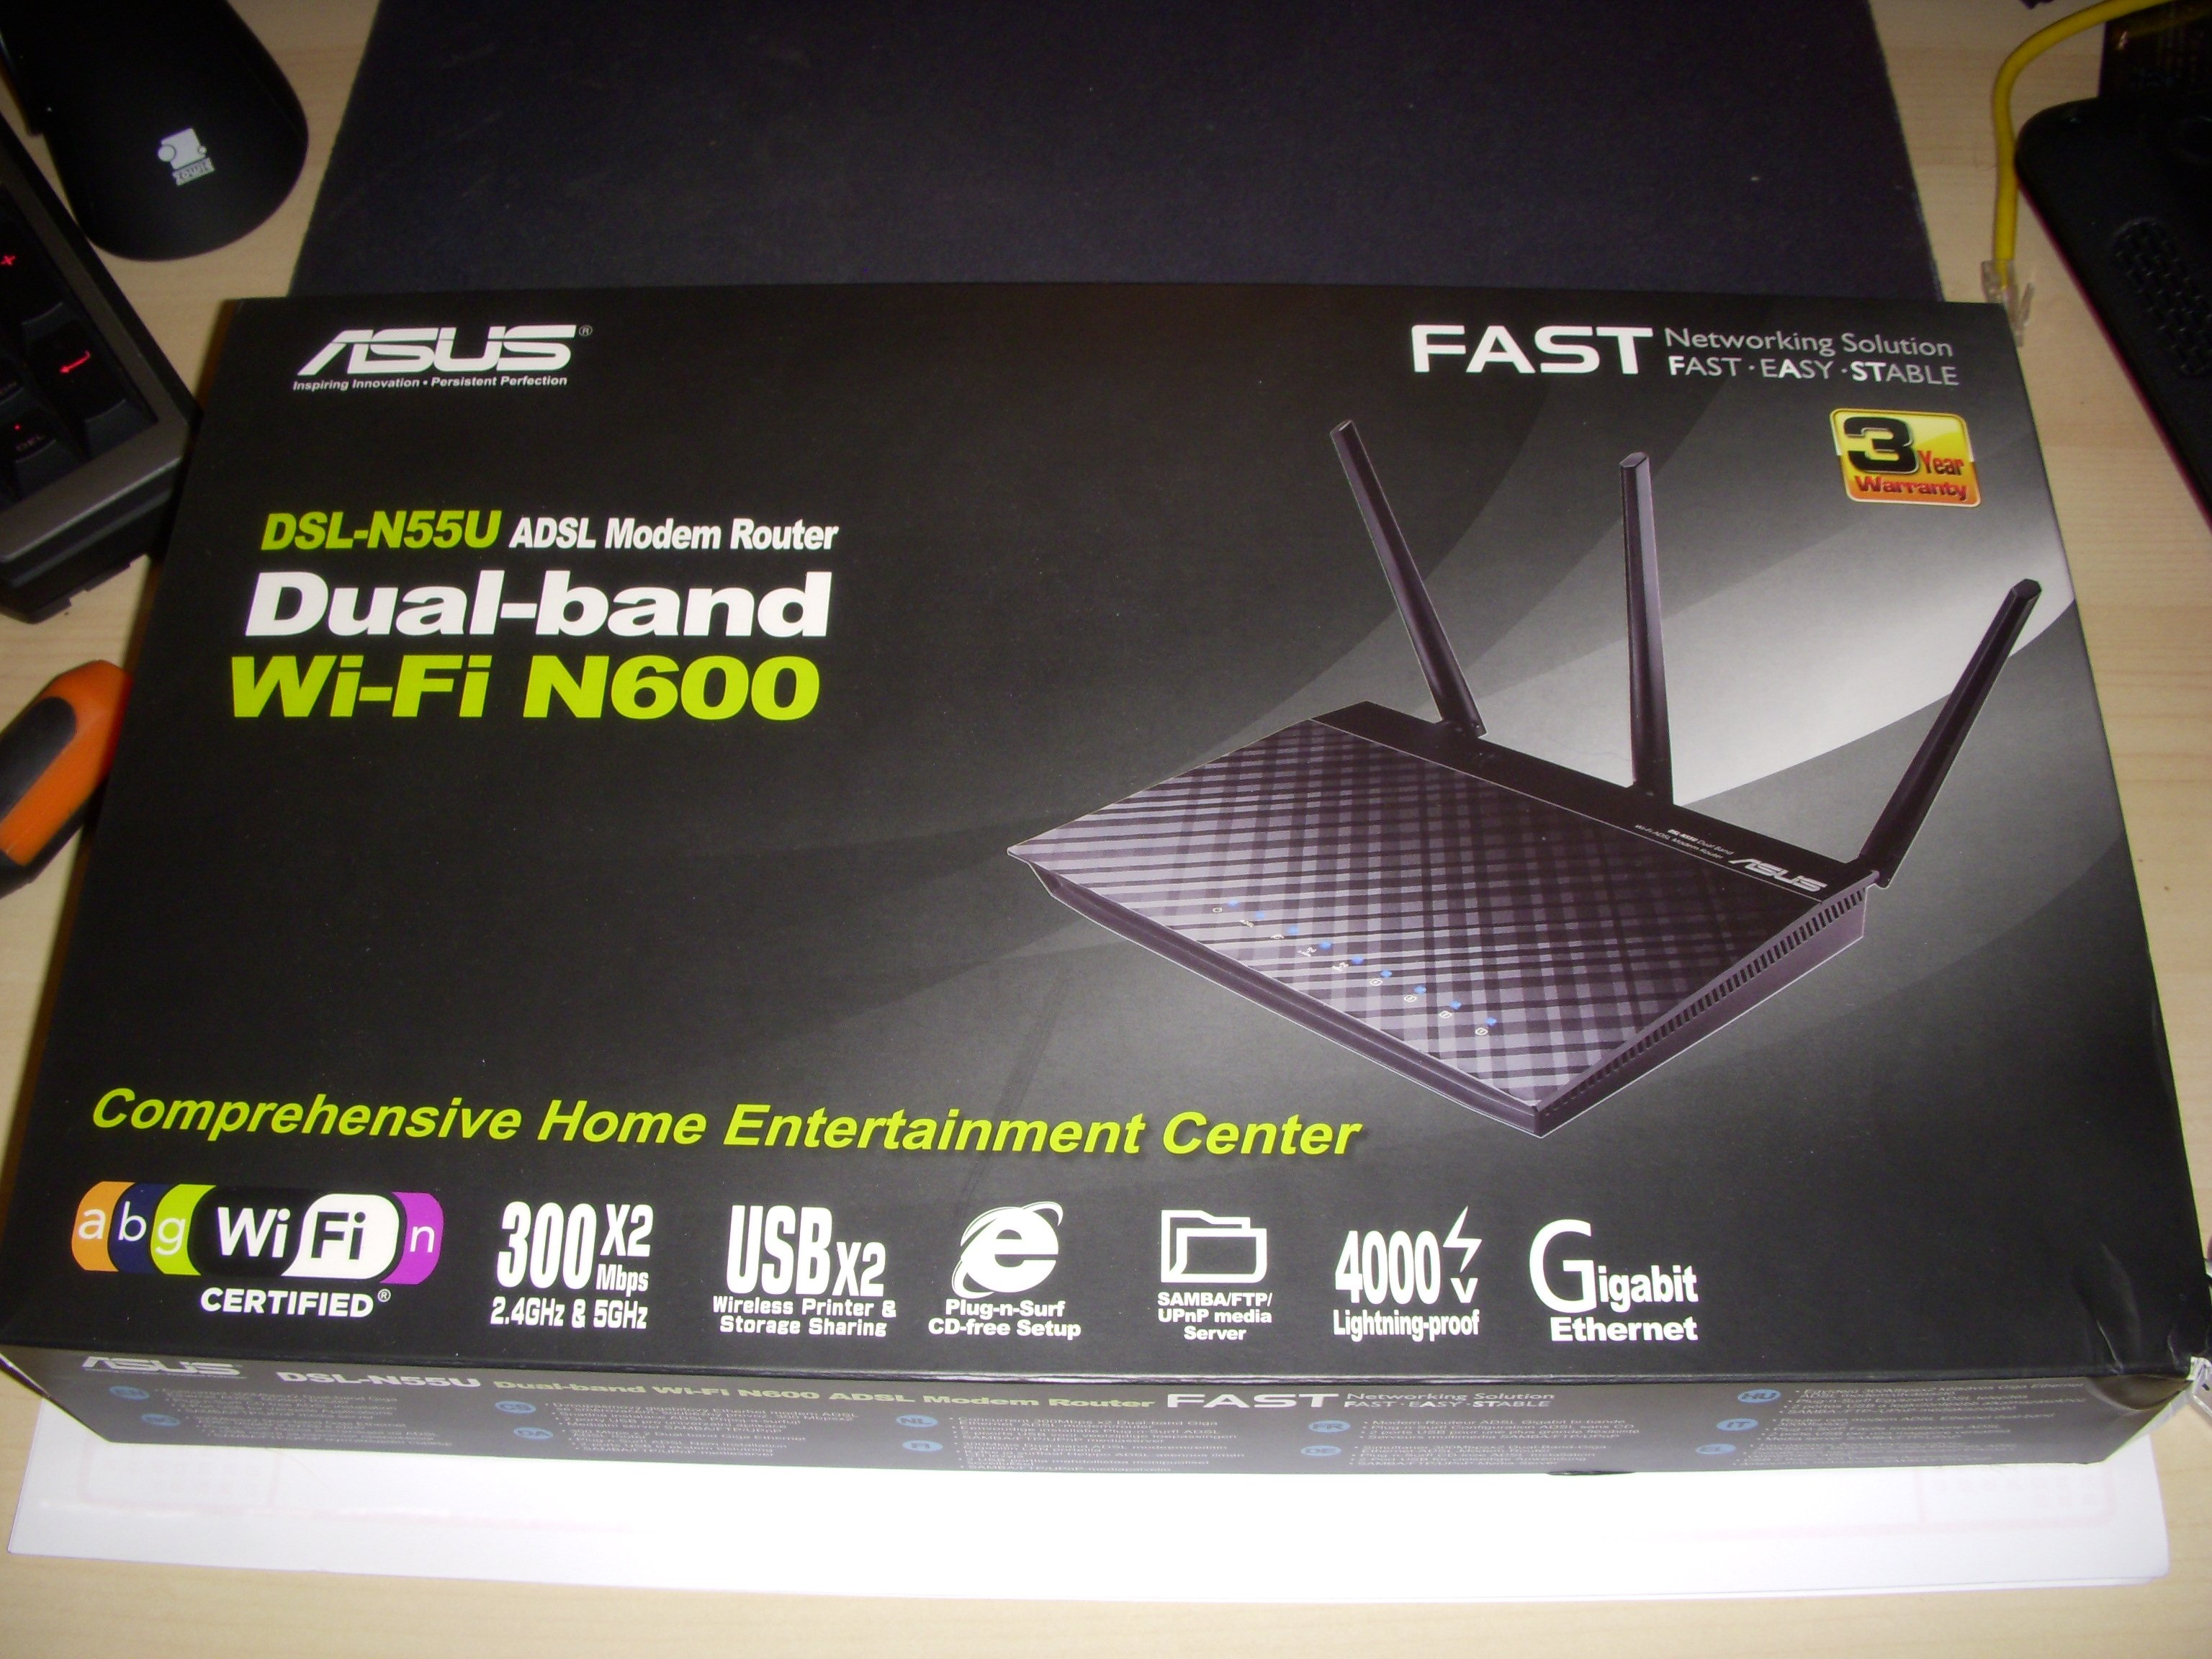 Asus DSL-N55U Wireless Router Drivers for Windows 8